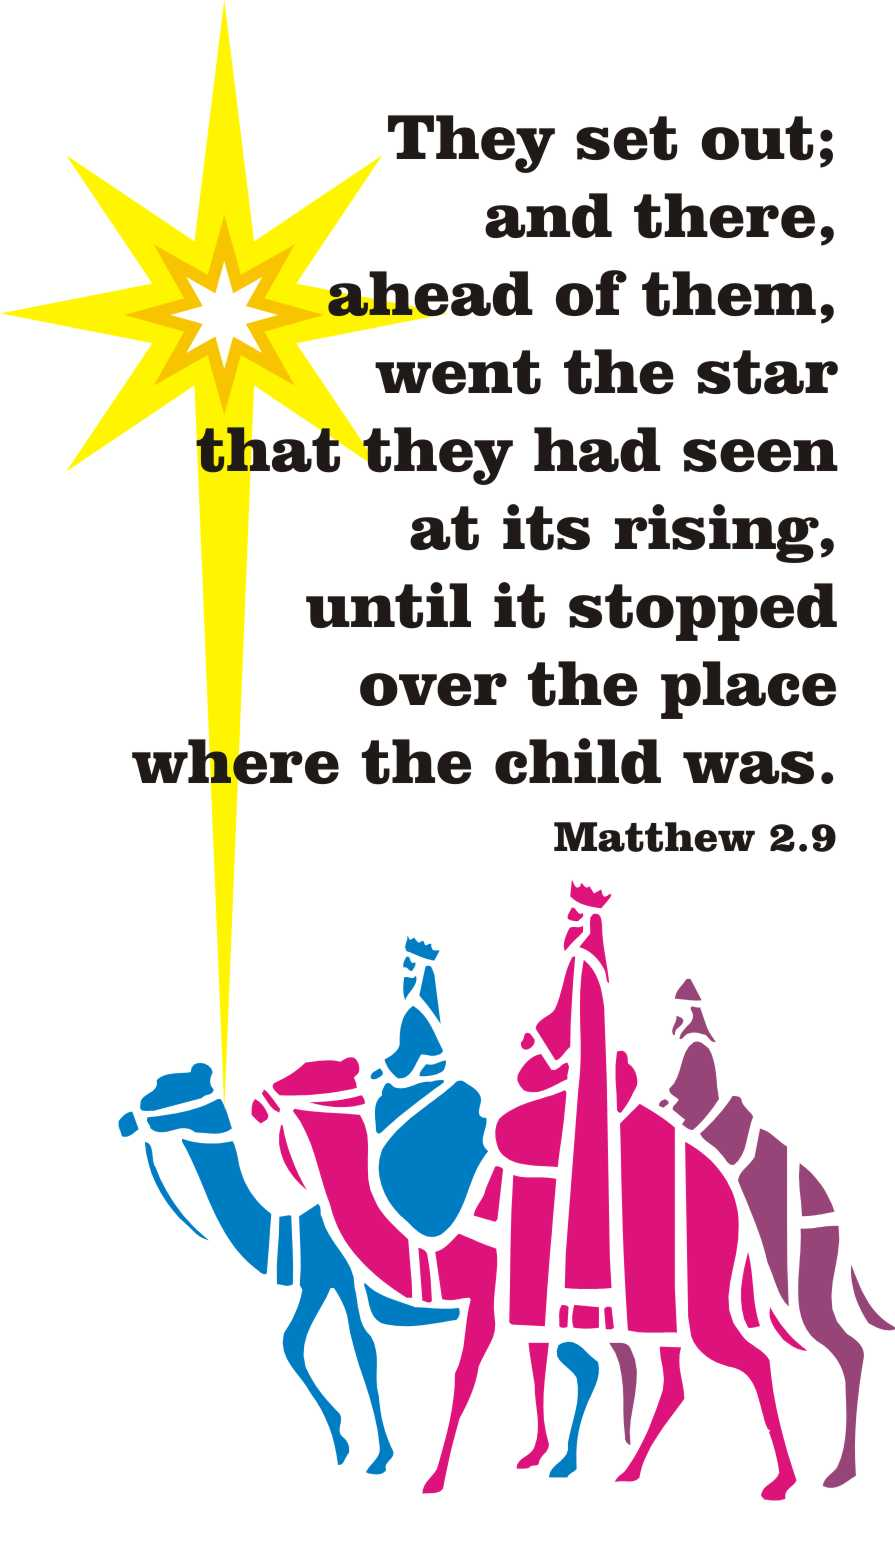 Free Epiphany Cliparts, Download Free Clip Art, Free Clip Art on.